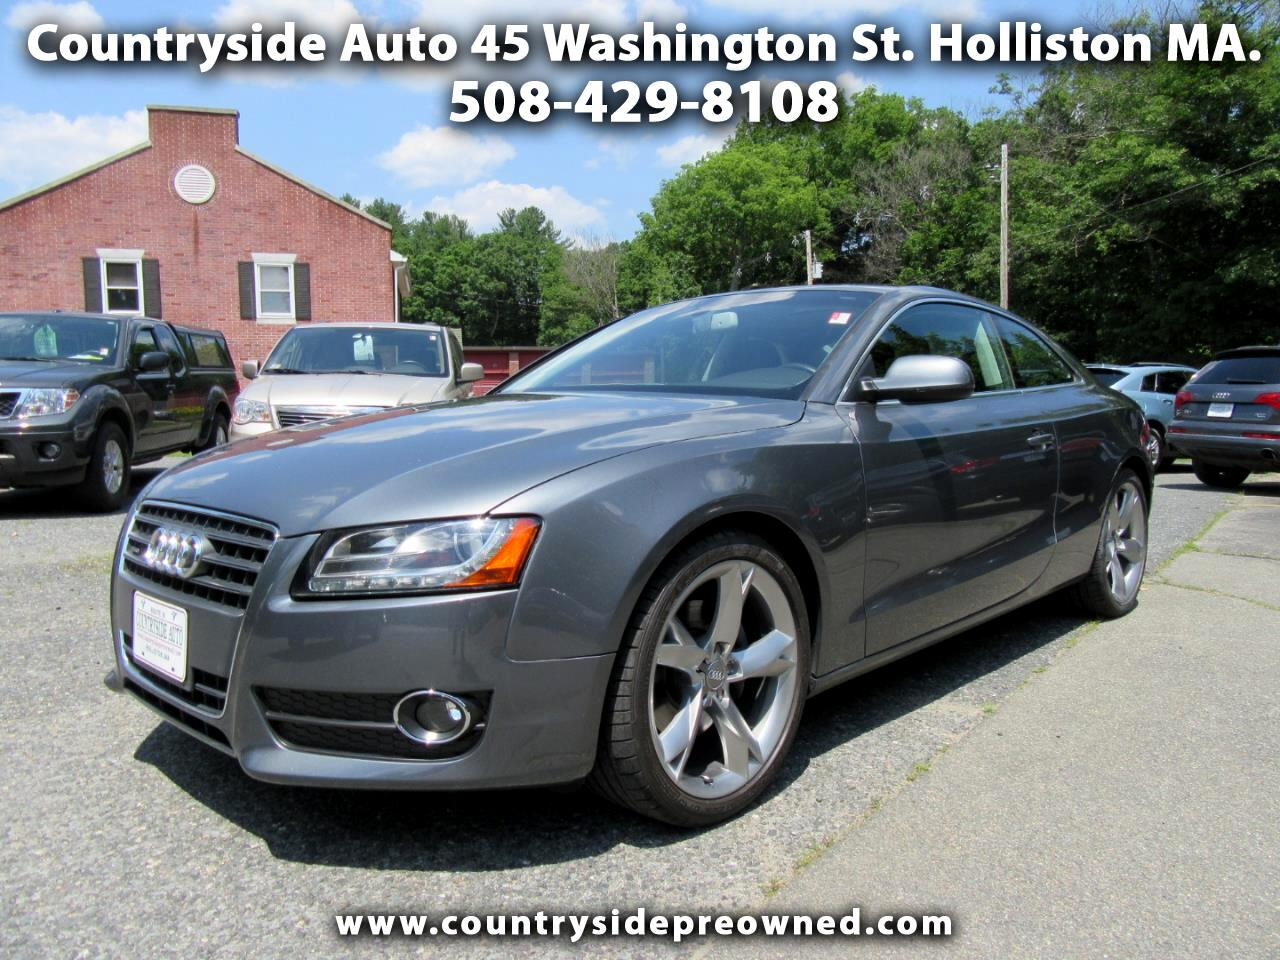 2012 Audi A5 Coupe 2.0T quattro Manual